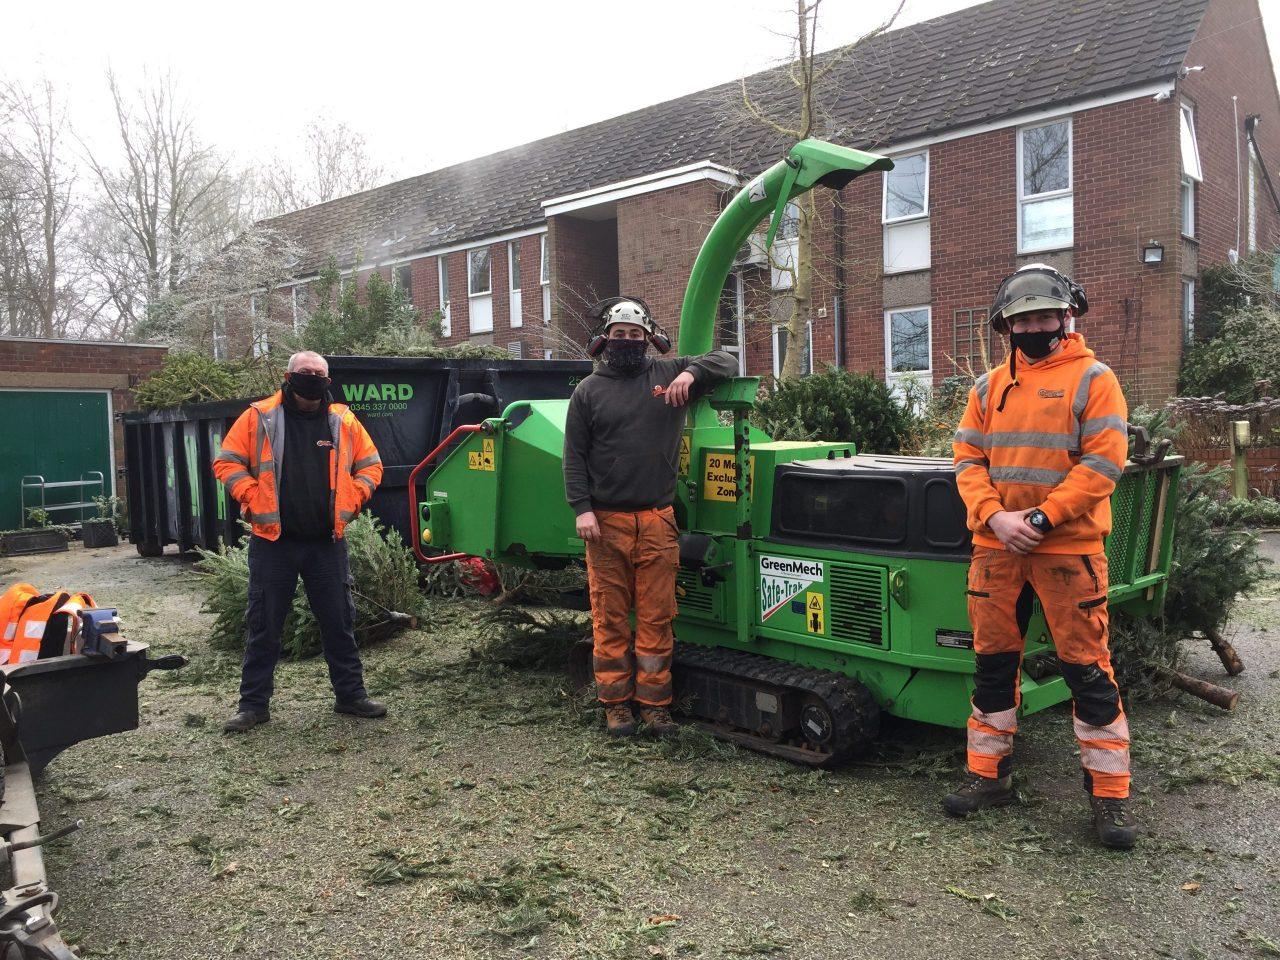 Christmas tree recycling scheme raises £17k for local hospice